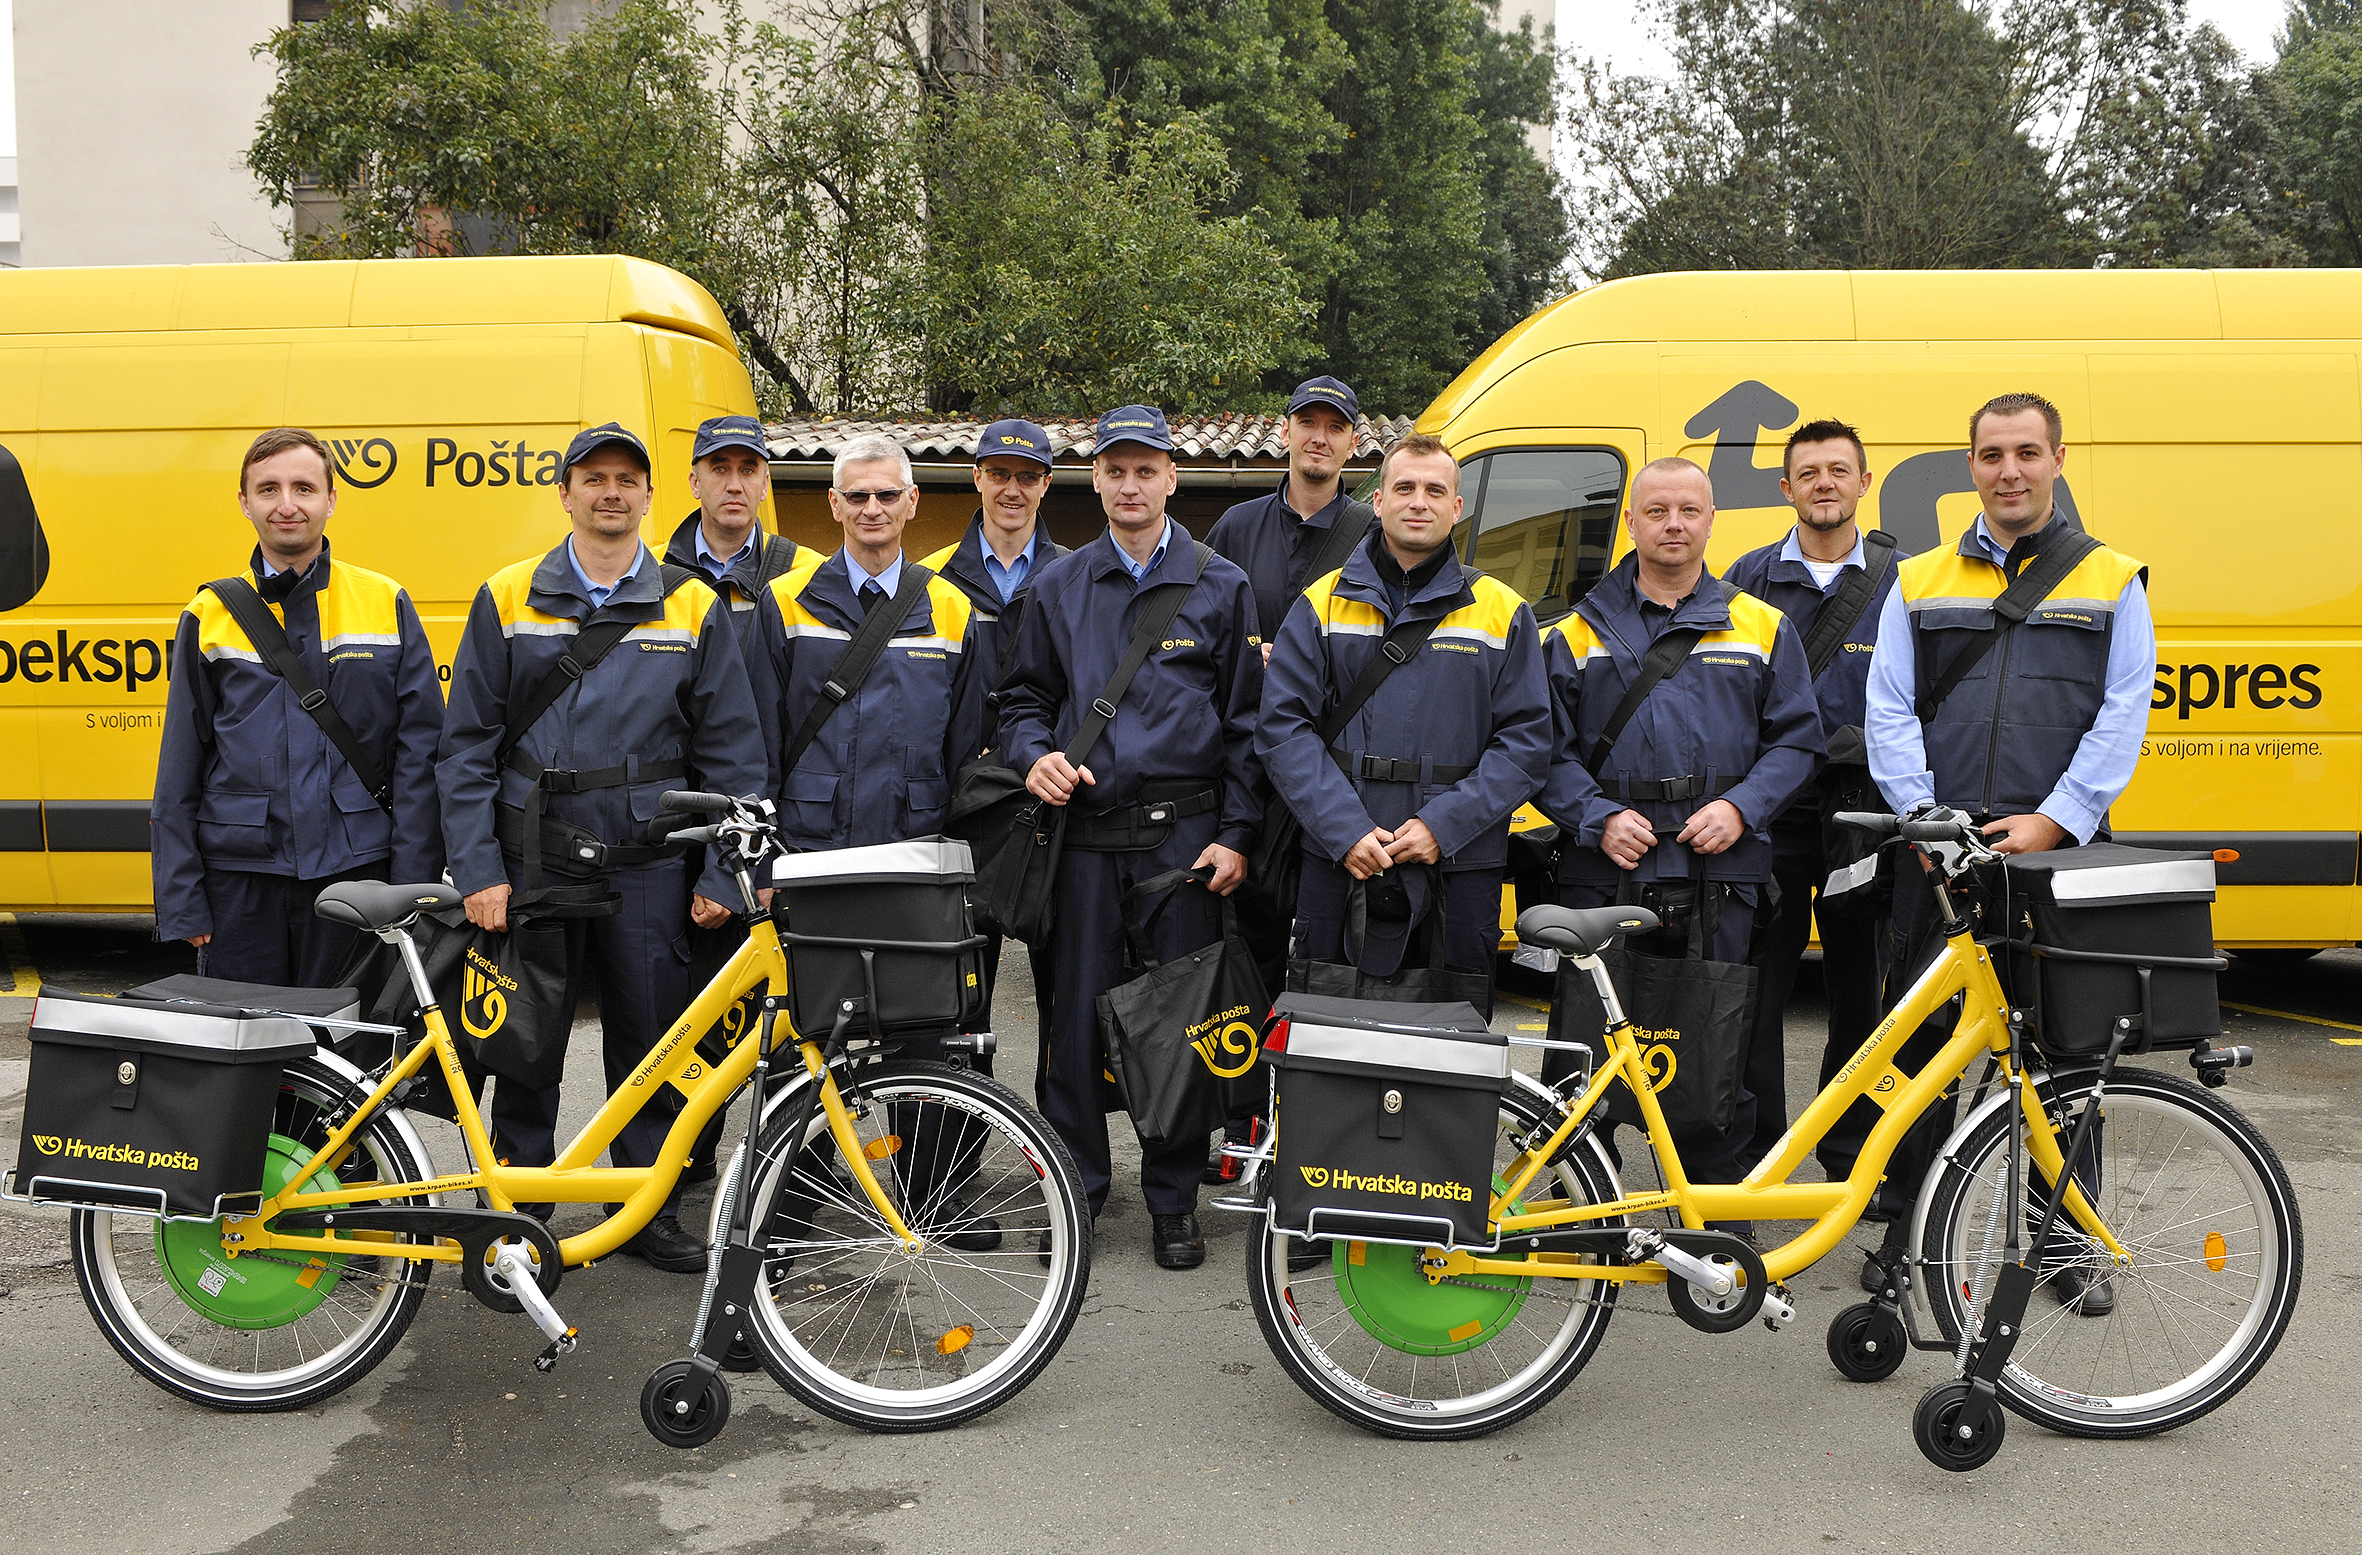 Croatian Post switches to e-bikes to cut costs and emissions